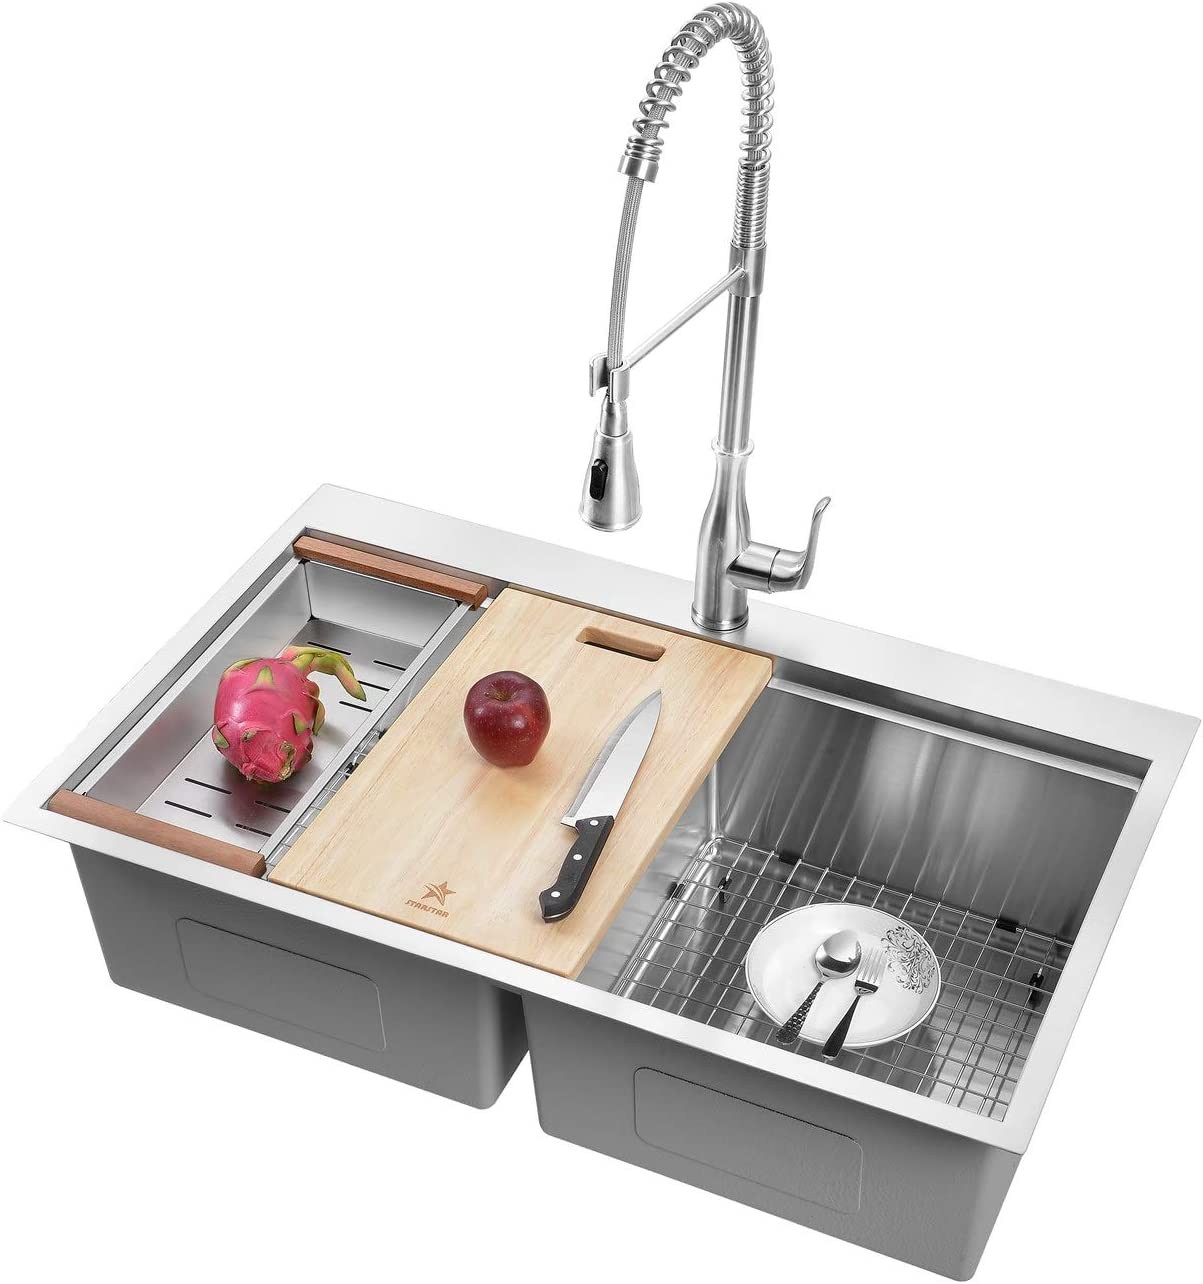 STARSTAR Workstation Ledge Topmount/Drop-in Double Bowl 304 Stainless Steel Kitchen/Yard/Bar/Laundry/Office Sink, With Grid, Wood Hold Colander, Cutting Board, Strainer (36 x 22 x 10 50/50)